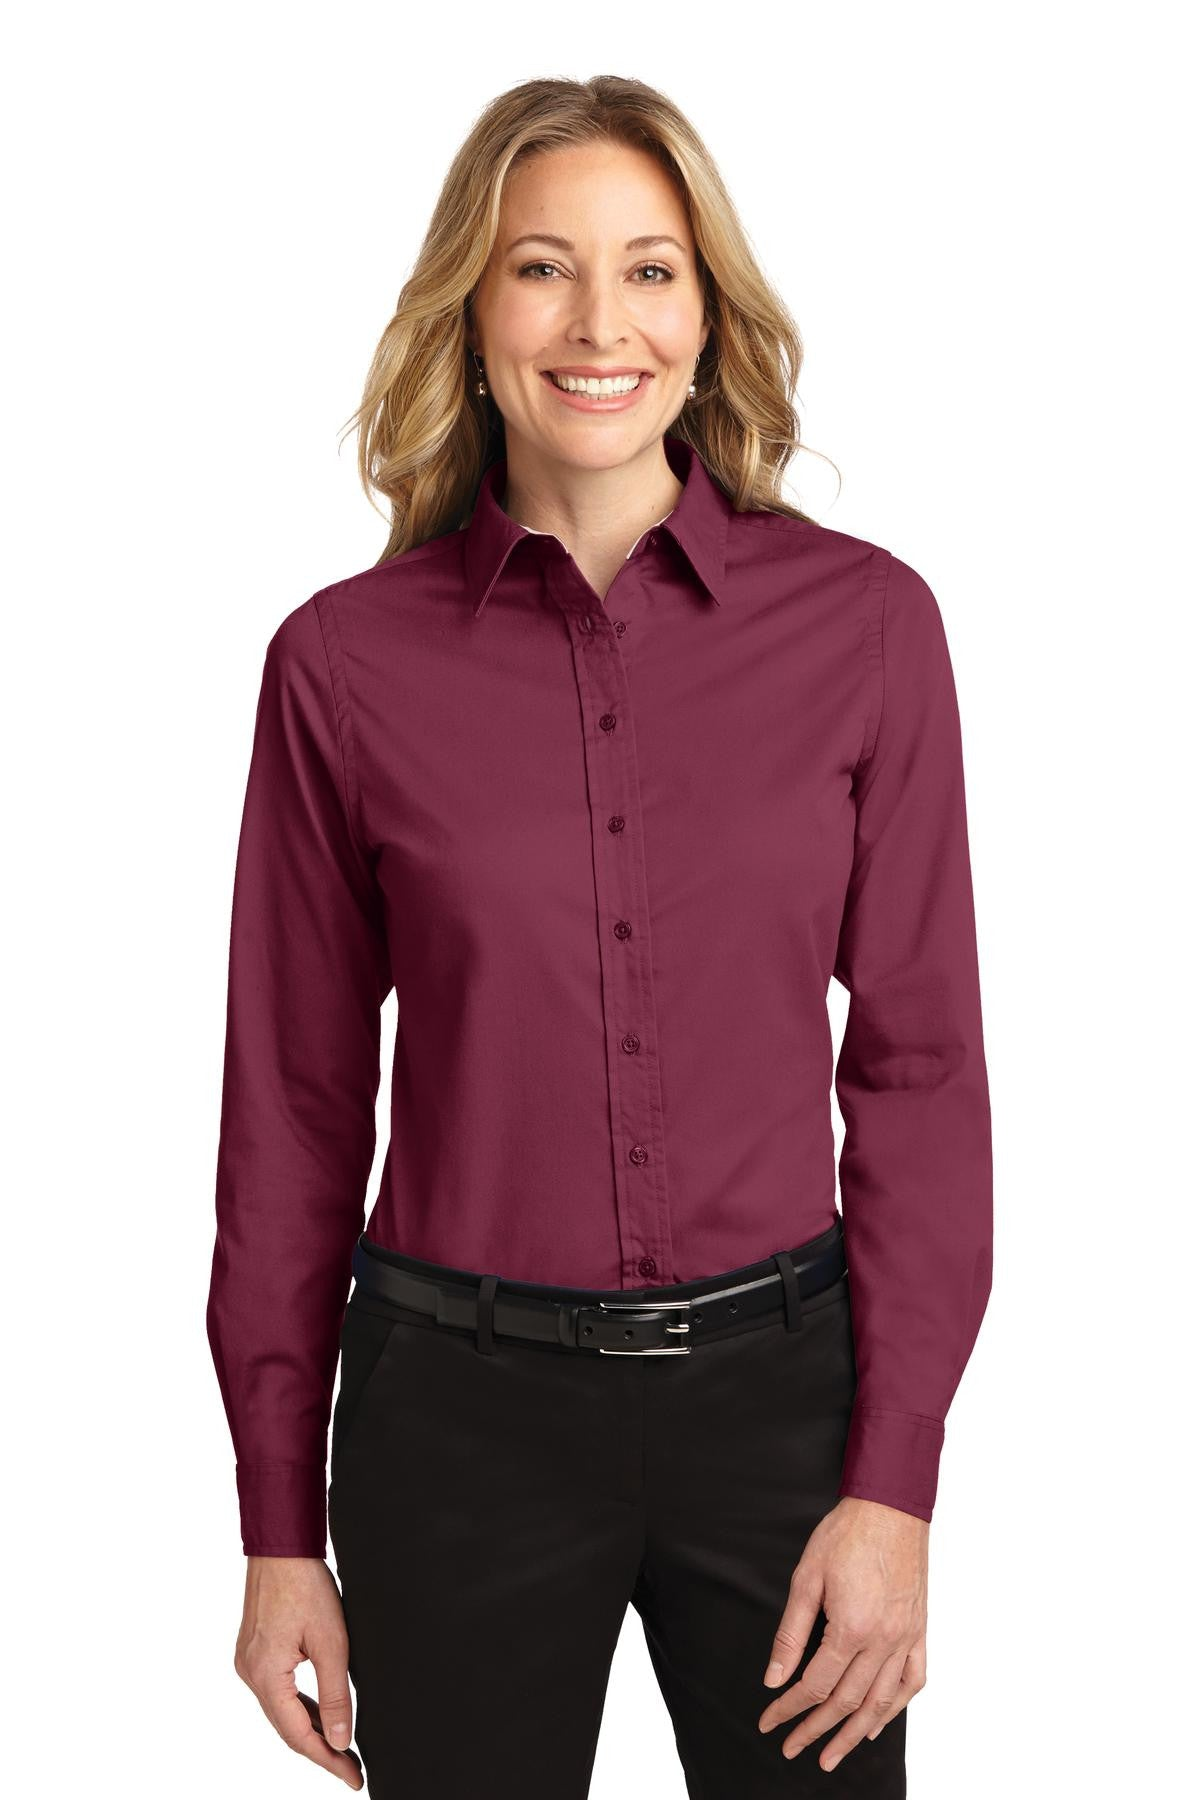 Port Authority Long Sleeve Easy Care Shirt L Burgundy and Light Stone